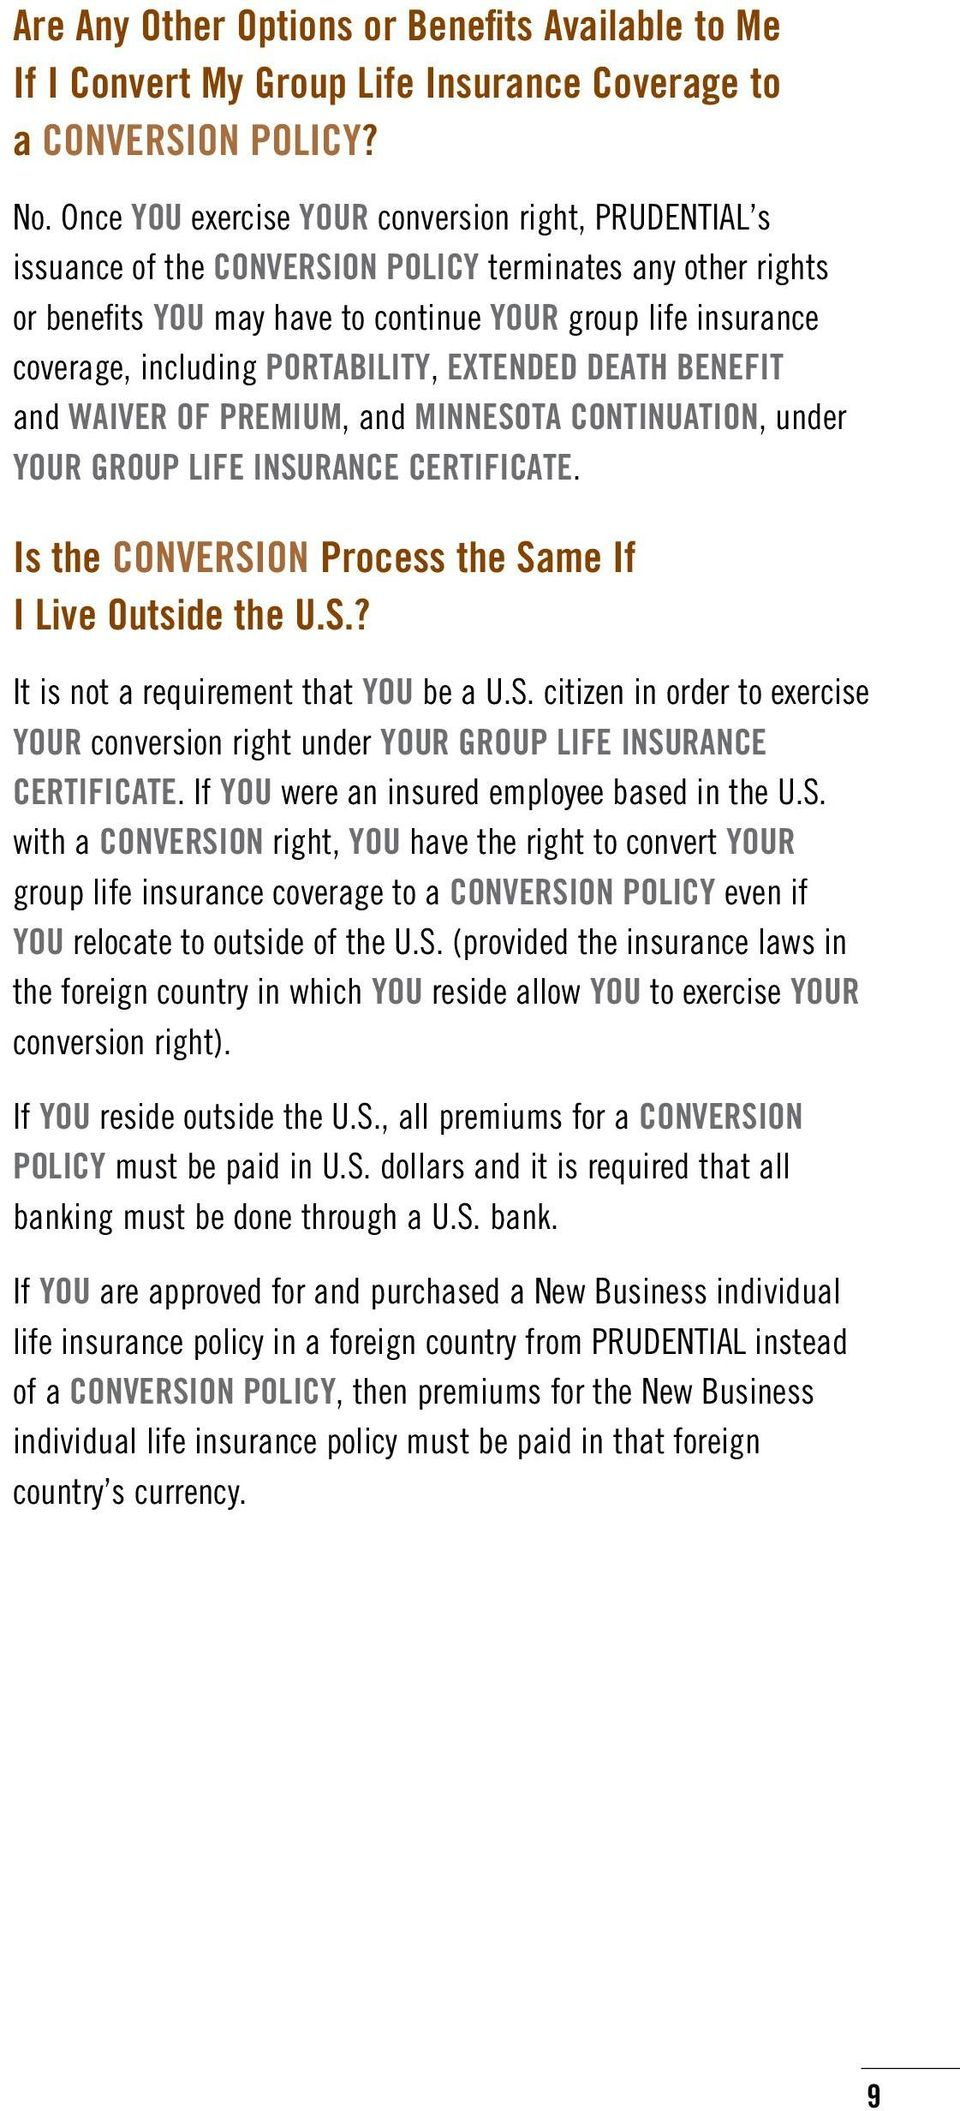 PORTABILITY, EXTENDED DEATH BENEFIT and WAIVER OF PREMIUM, and MINNESOTA CONTINUATION, under YOUR GROUP LIFE INSURANCE CERTIFICATE. Is the CONVERSION Process the Same If I Live Outside the U.S.? It is not a requirement that YOU be a U.